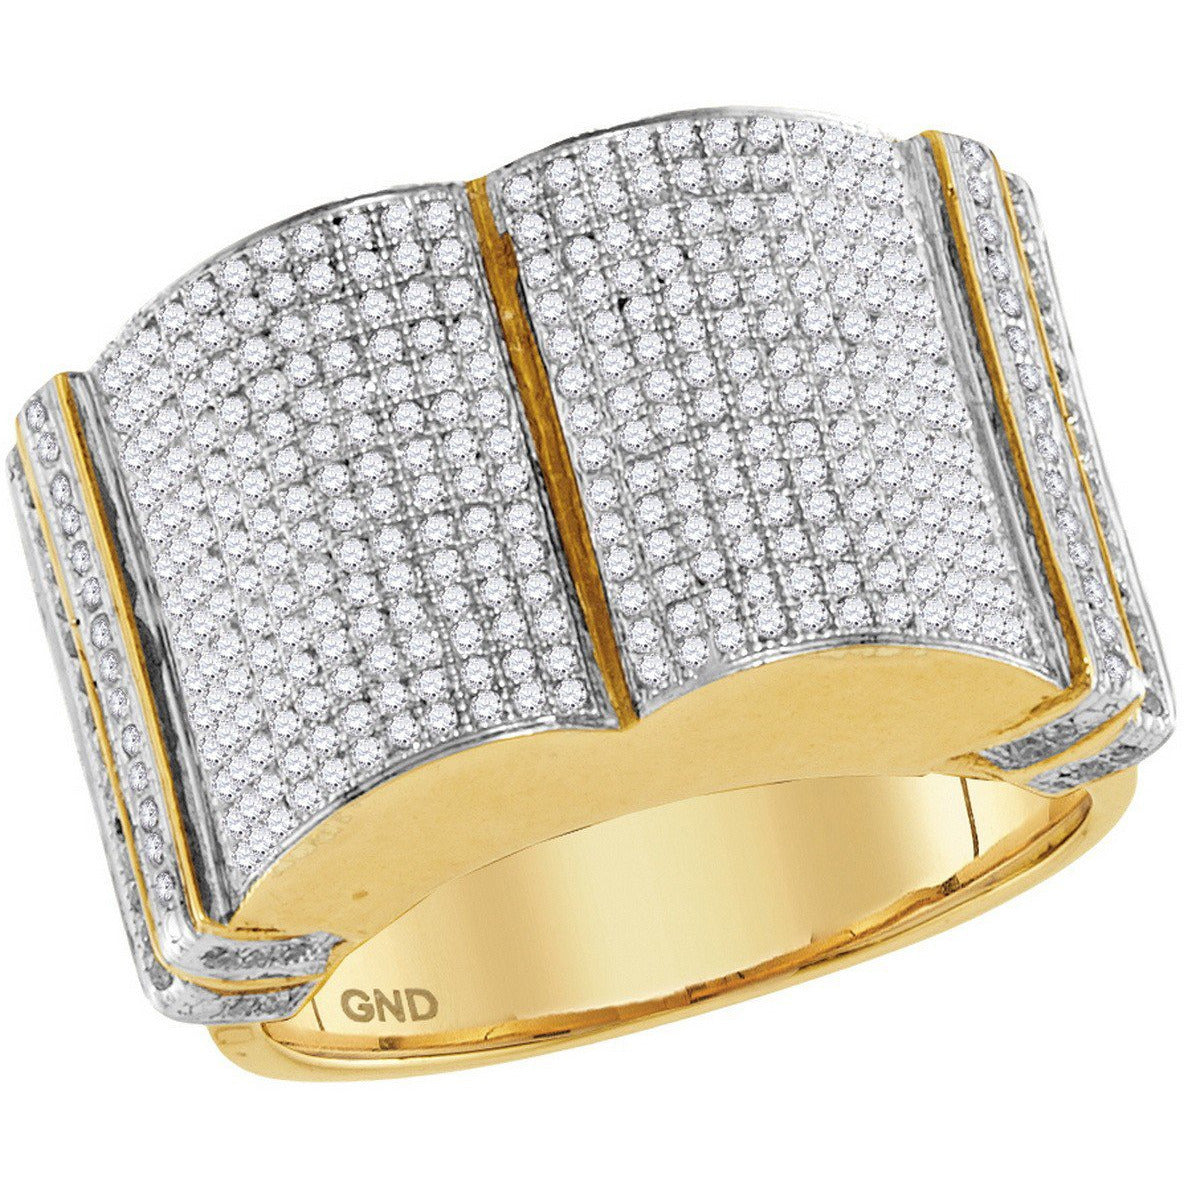 10kt Yellow Gold Mens Round Diamond Symmetrical Rounded Cluster Ring 1-1/5 Cttw 86018 - shirin-diamonds